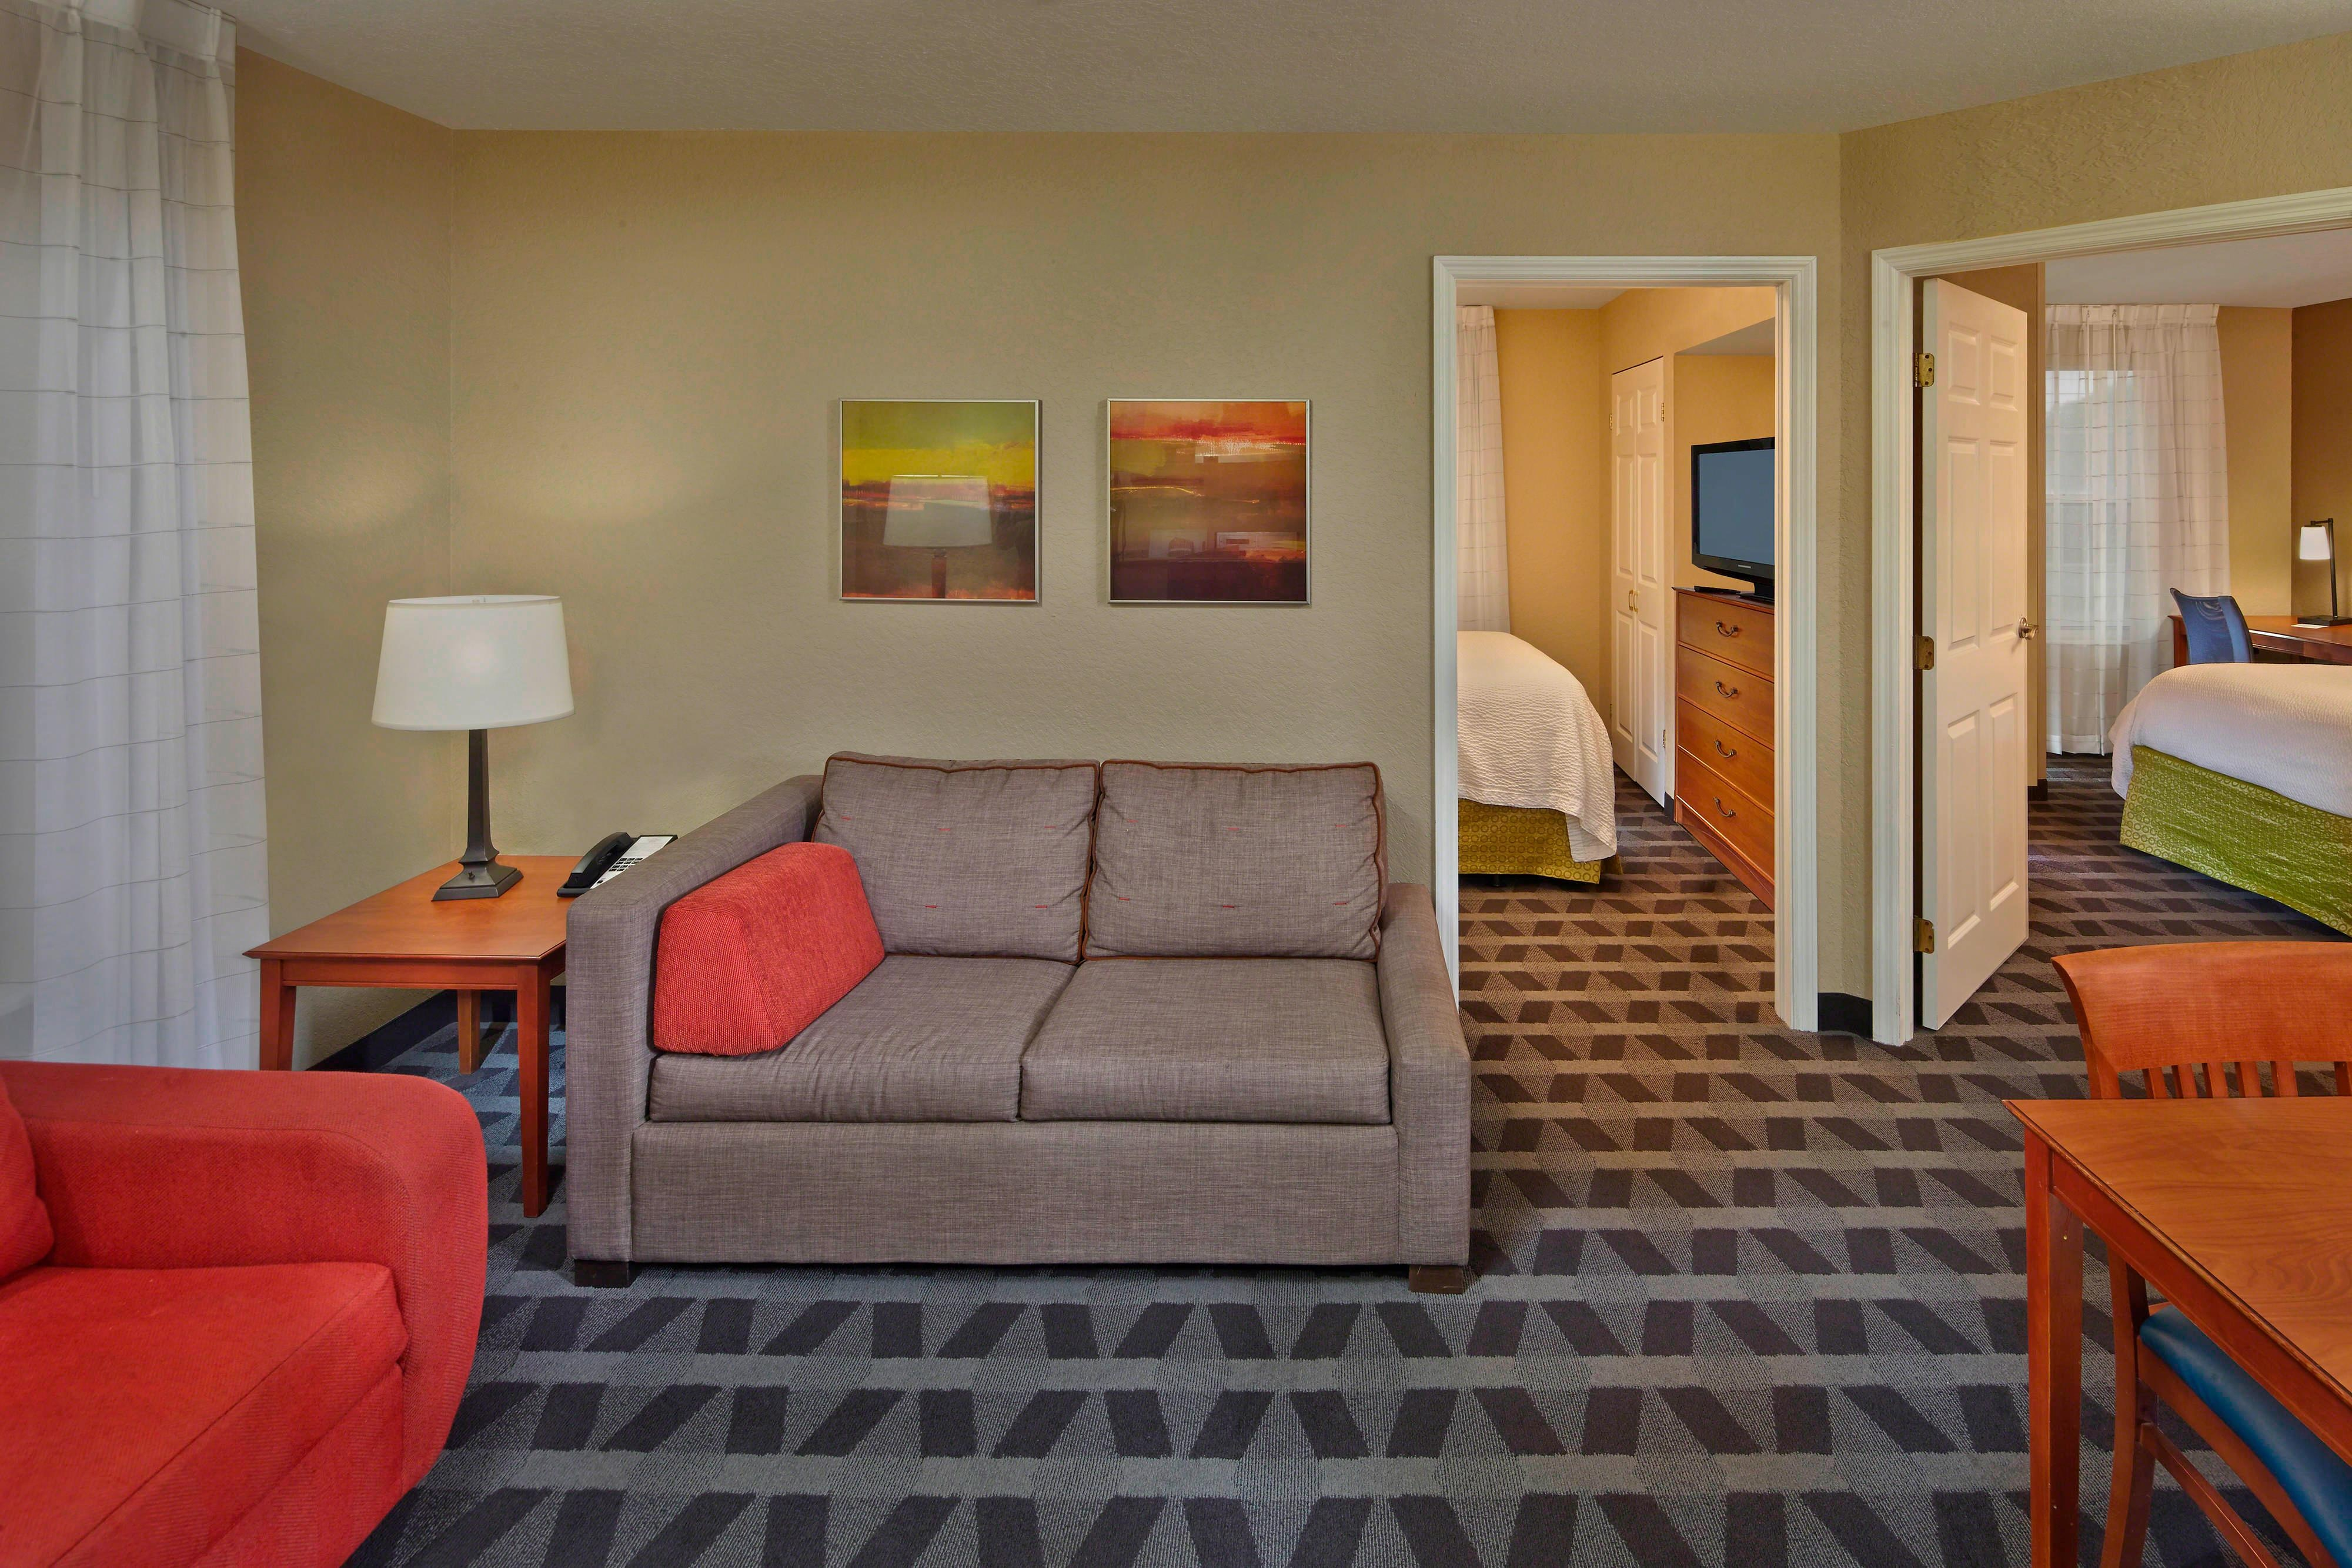 Towneplace Suites St Petersburg Clearwater Hotel Amenities Hotel Room Highlights